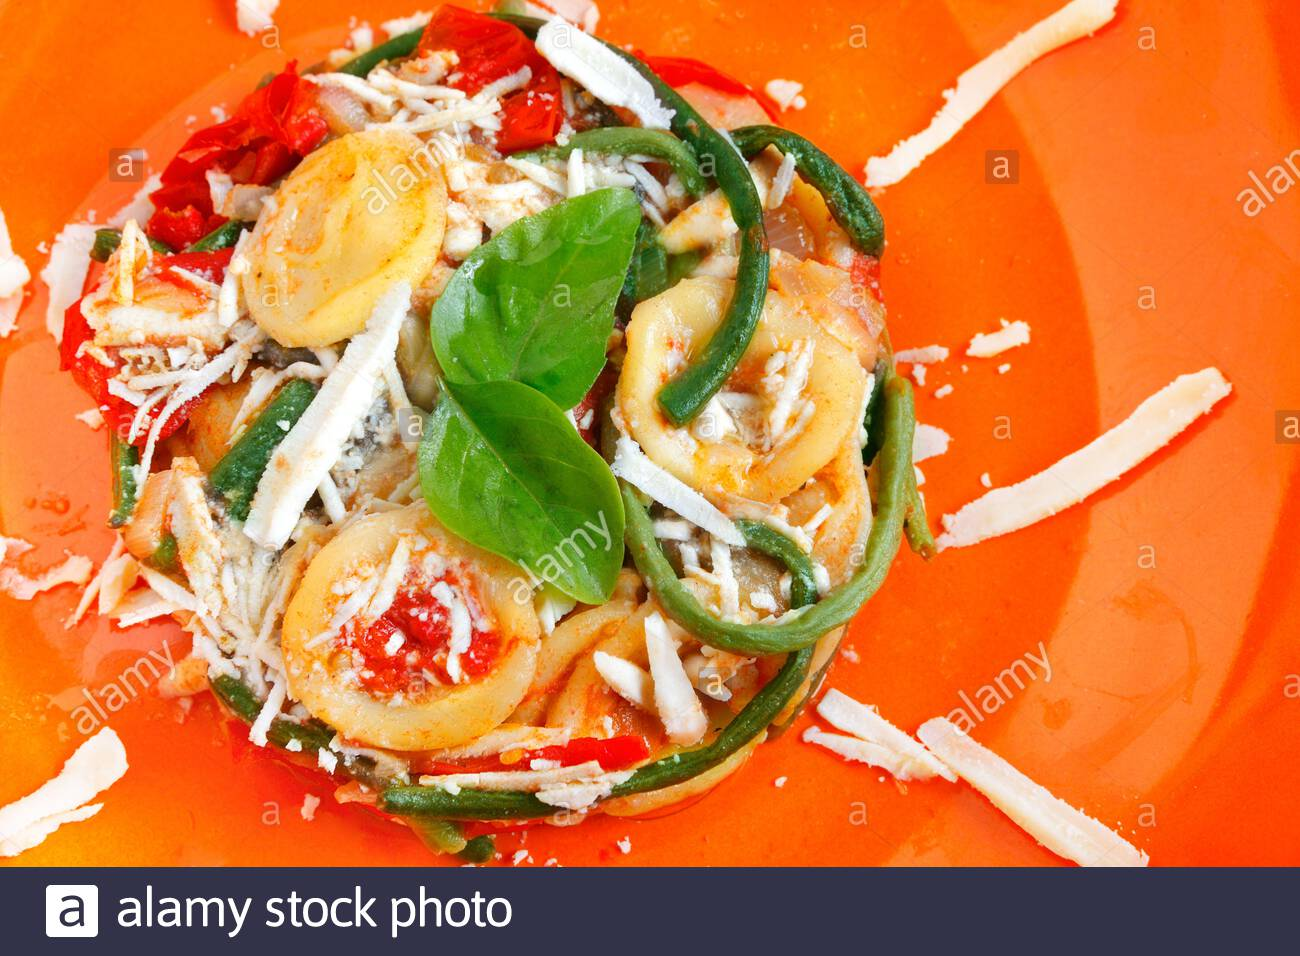 Traditional pasta orecchiette with tomatoes, green beans and cacioricotta cheese from Apulia, Italy Stock Photo